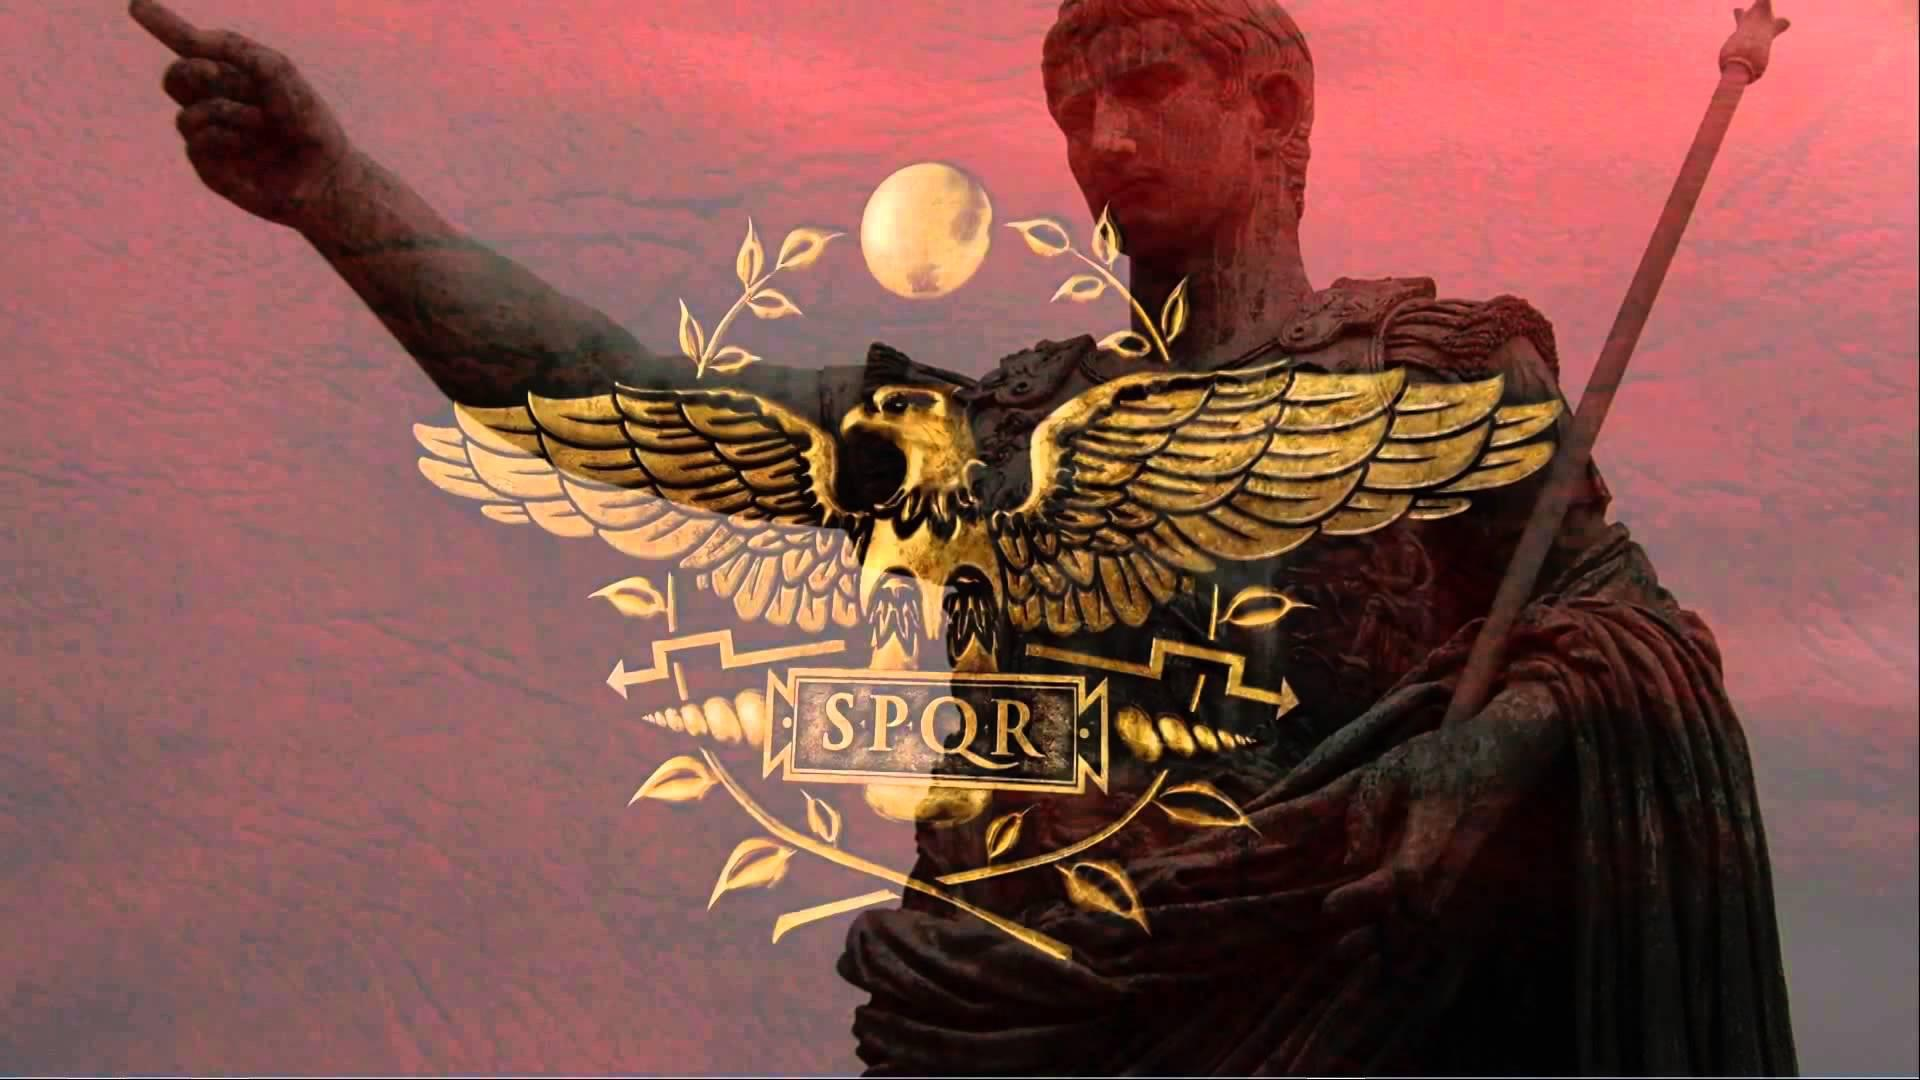 The Fall of the Roman Empire Movie Wallpapers DETAILS